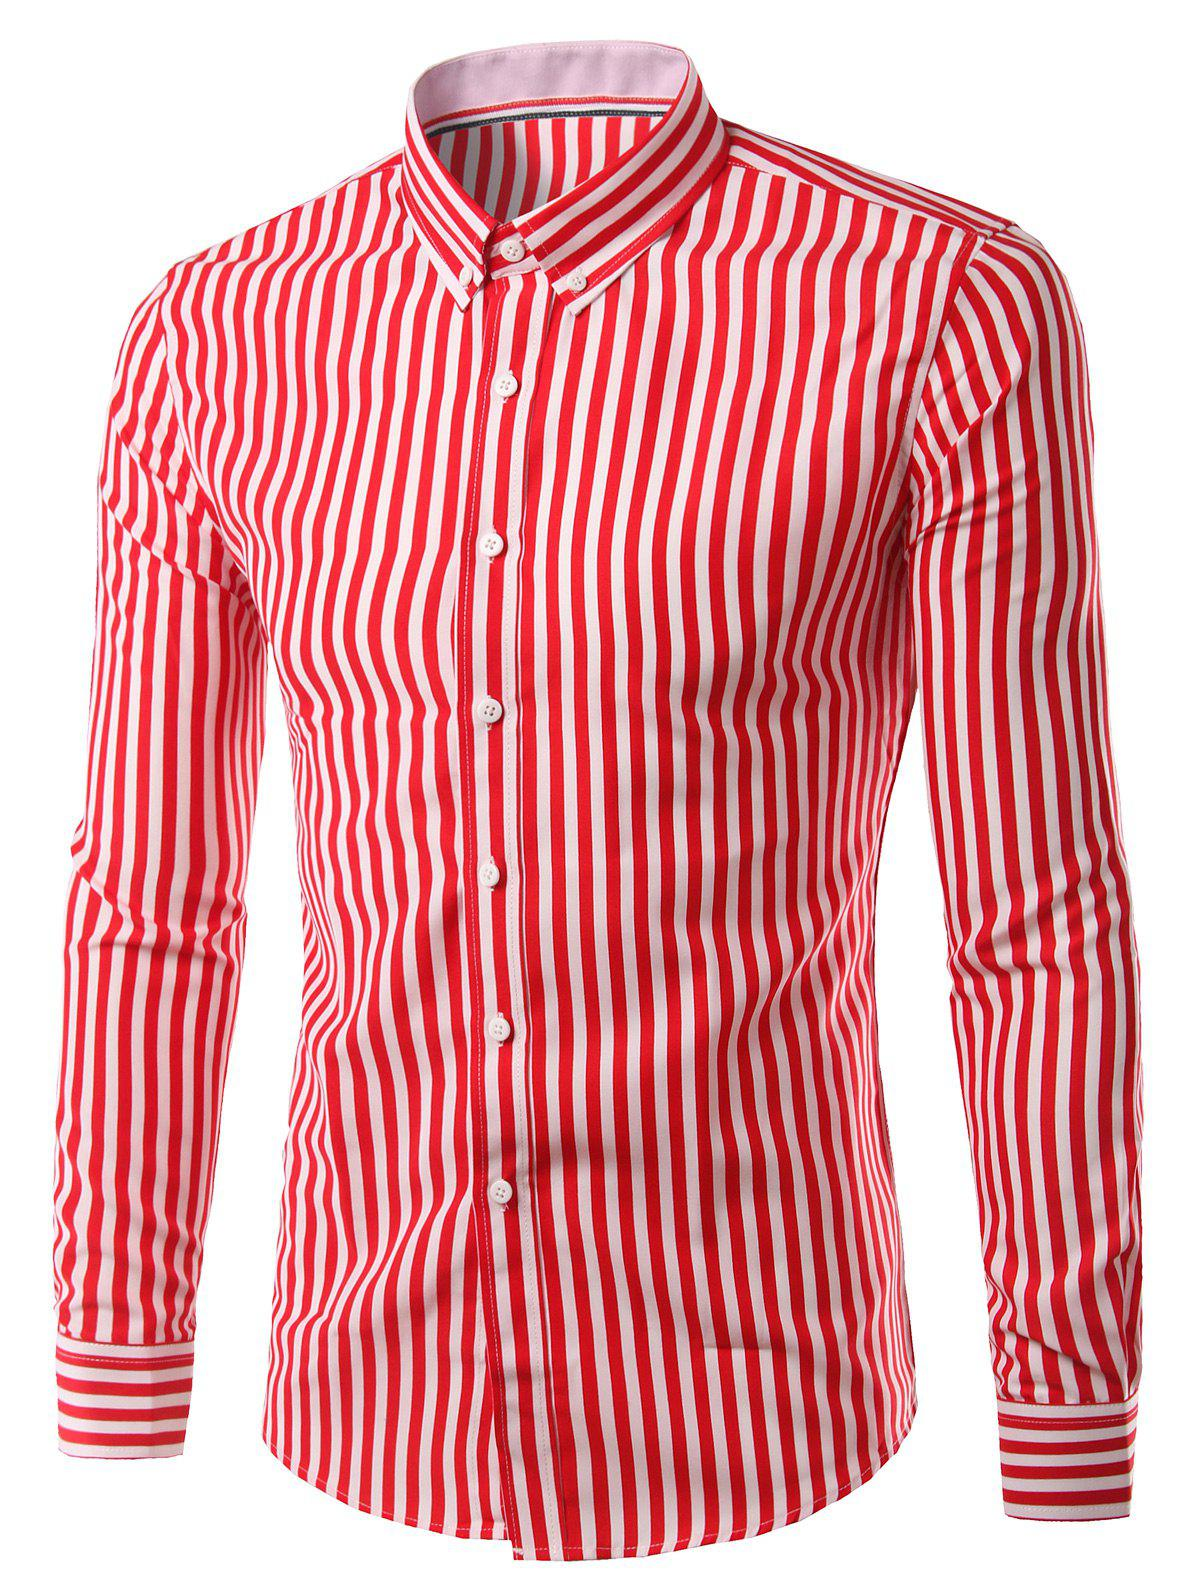 Turn-Down Collar Plus Size Vertical Stripe Long Sleeve Button-Down Men's Shirt